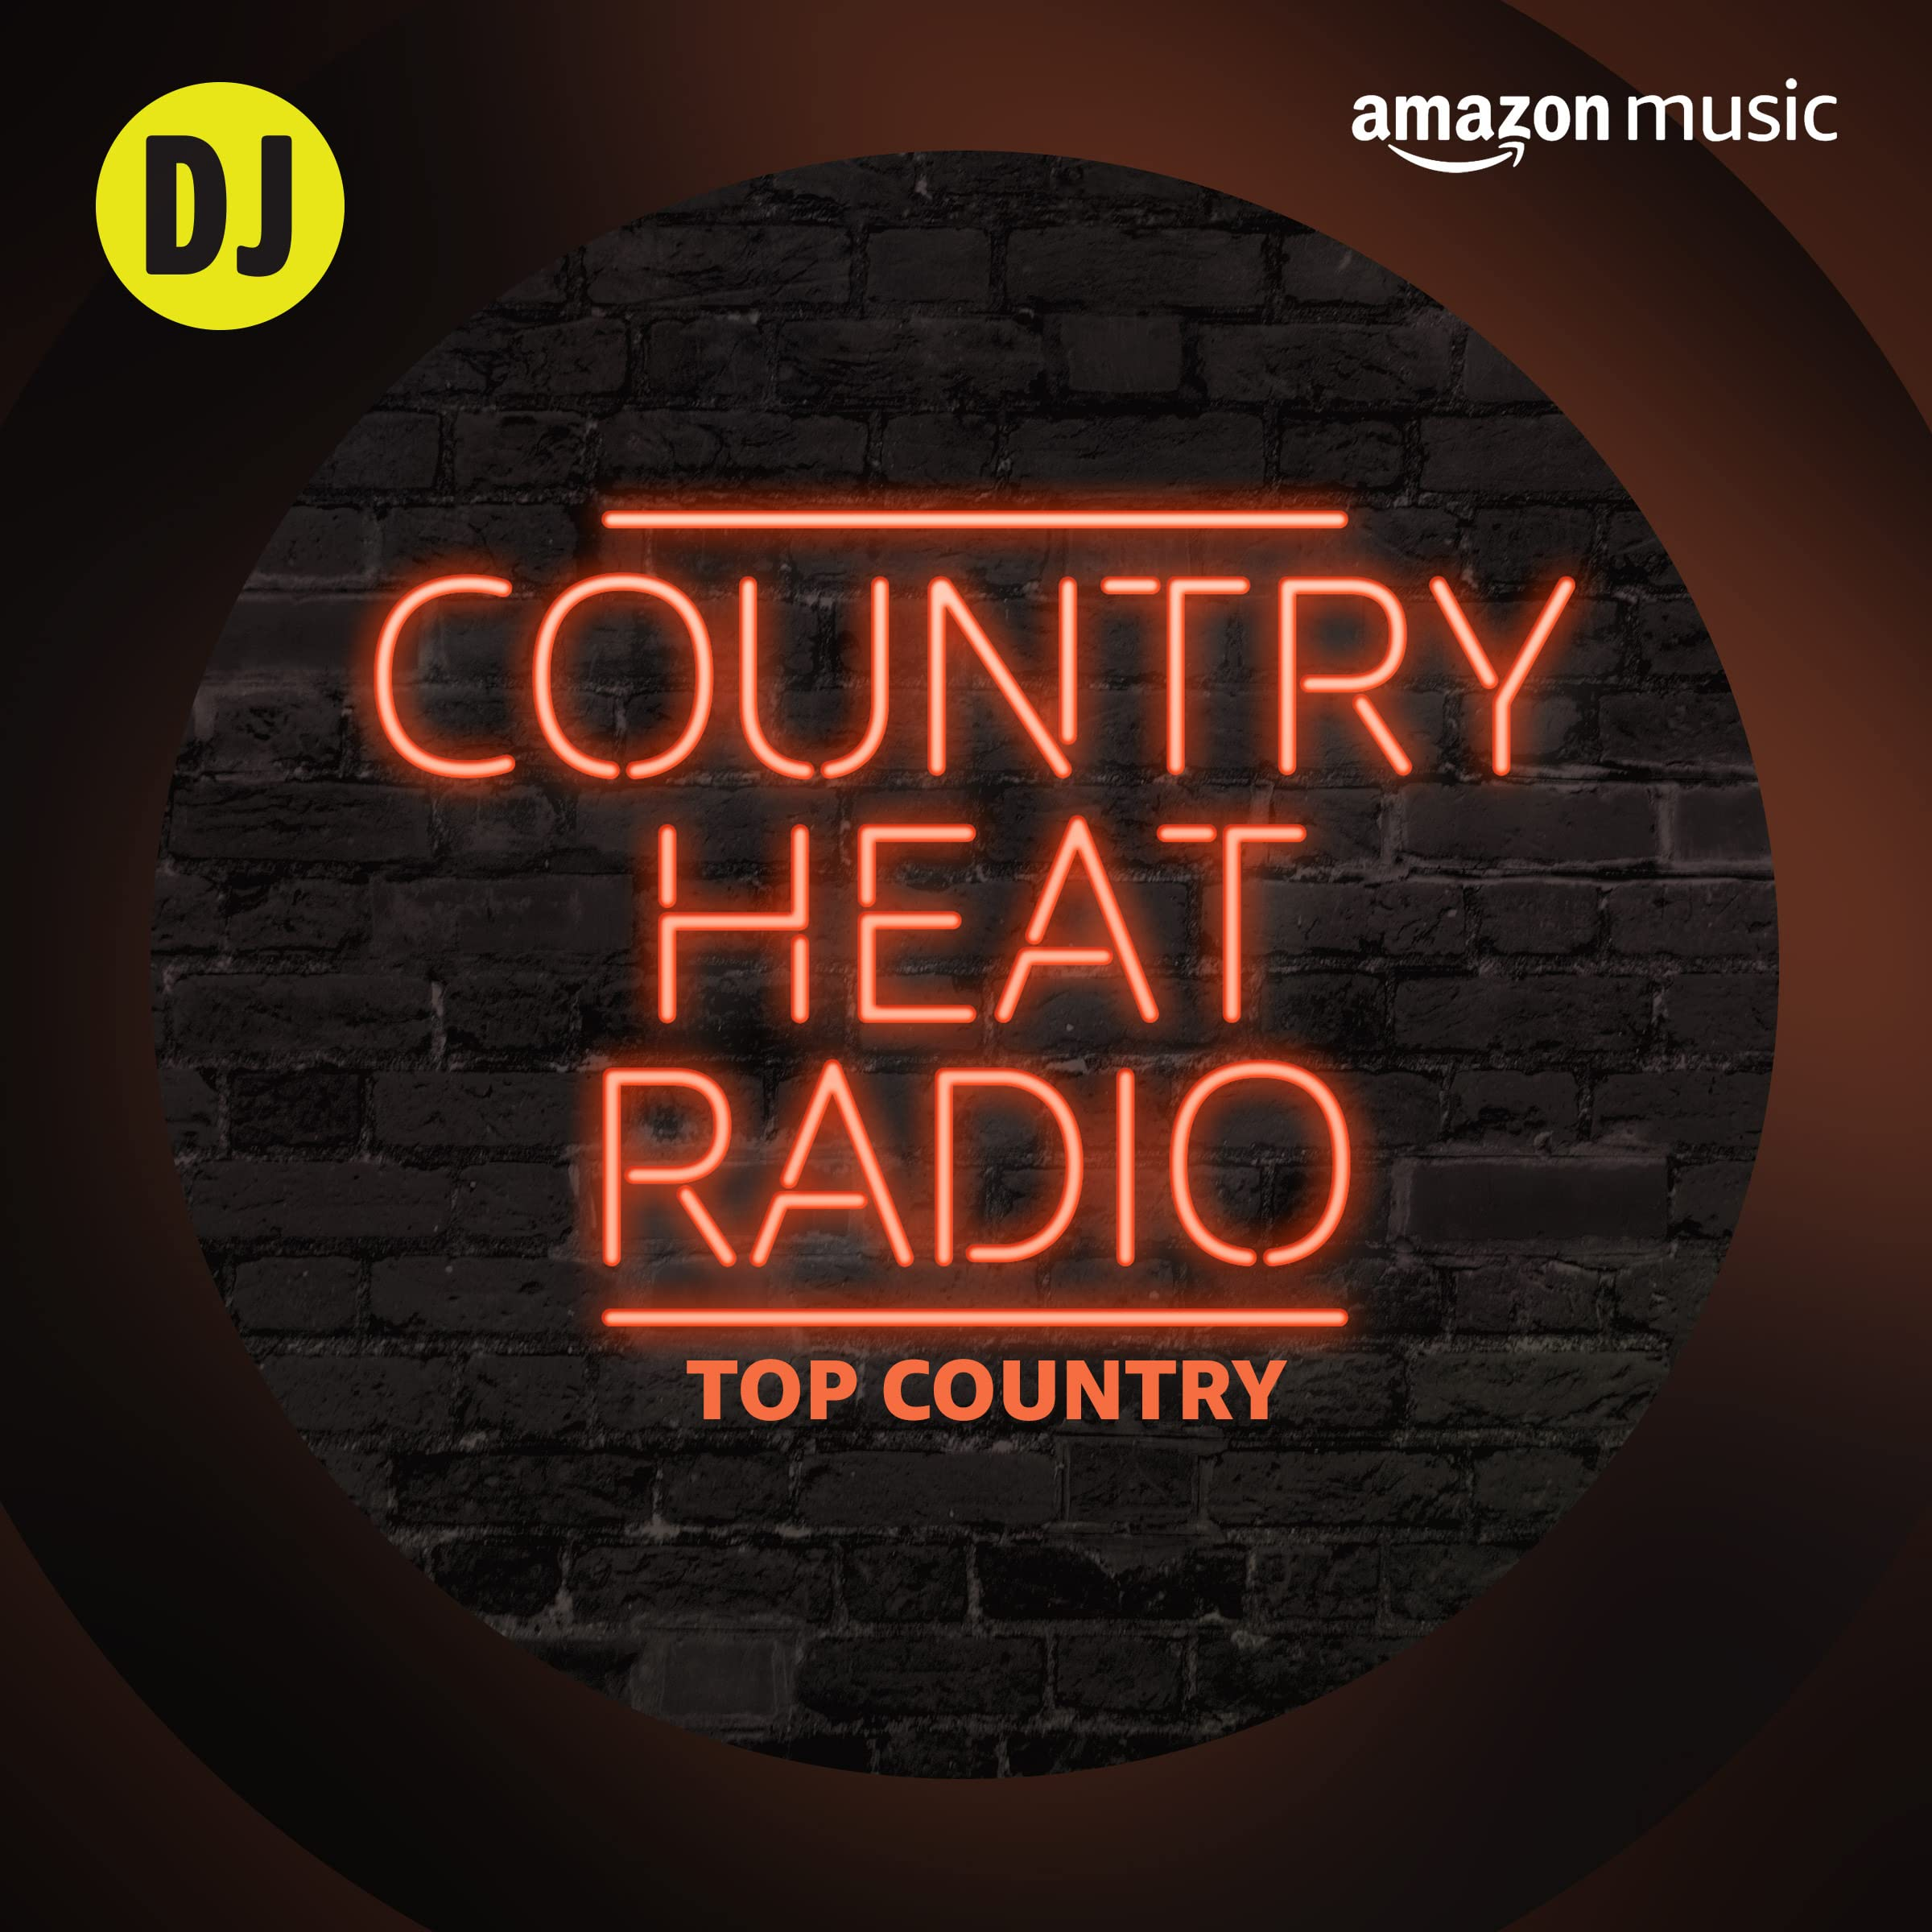 Country Heat in DJ Mode